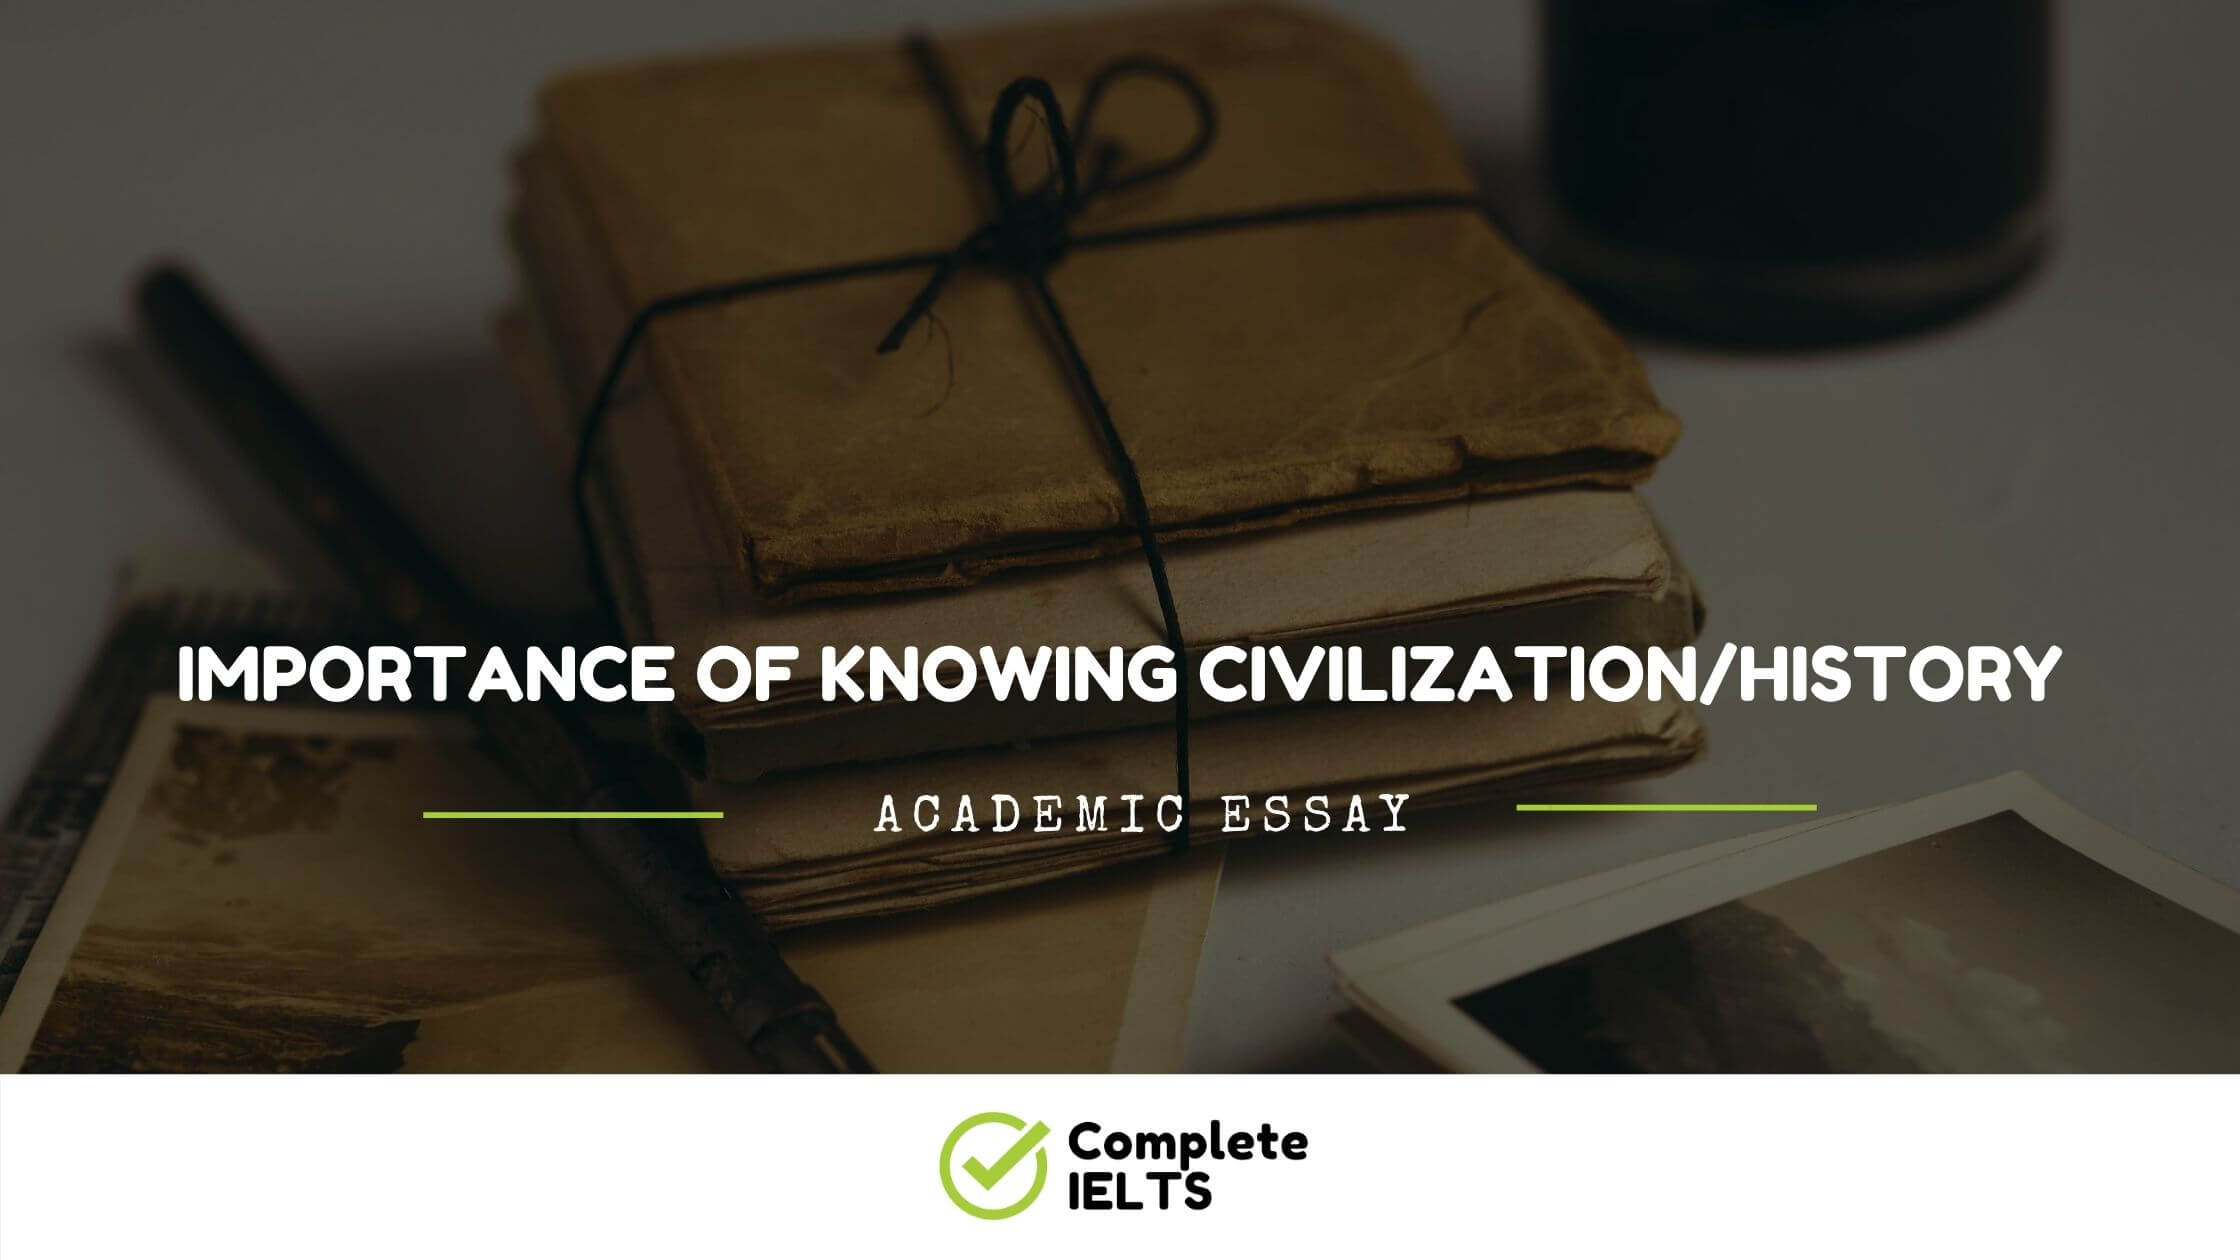 Essay on Importance Of Knowing Civilization/History